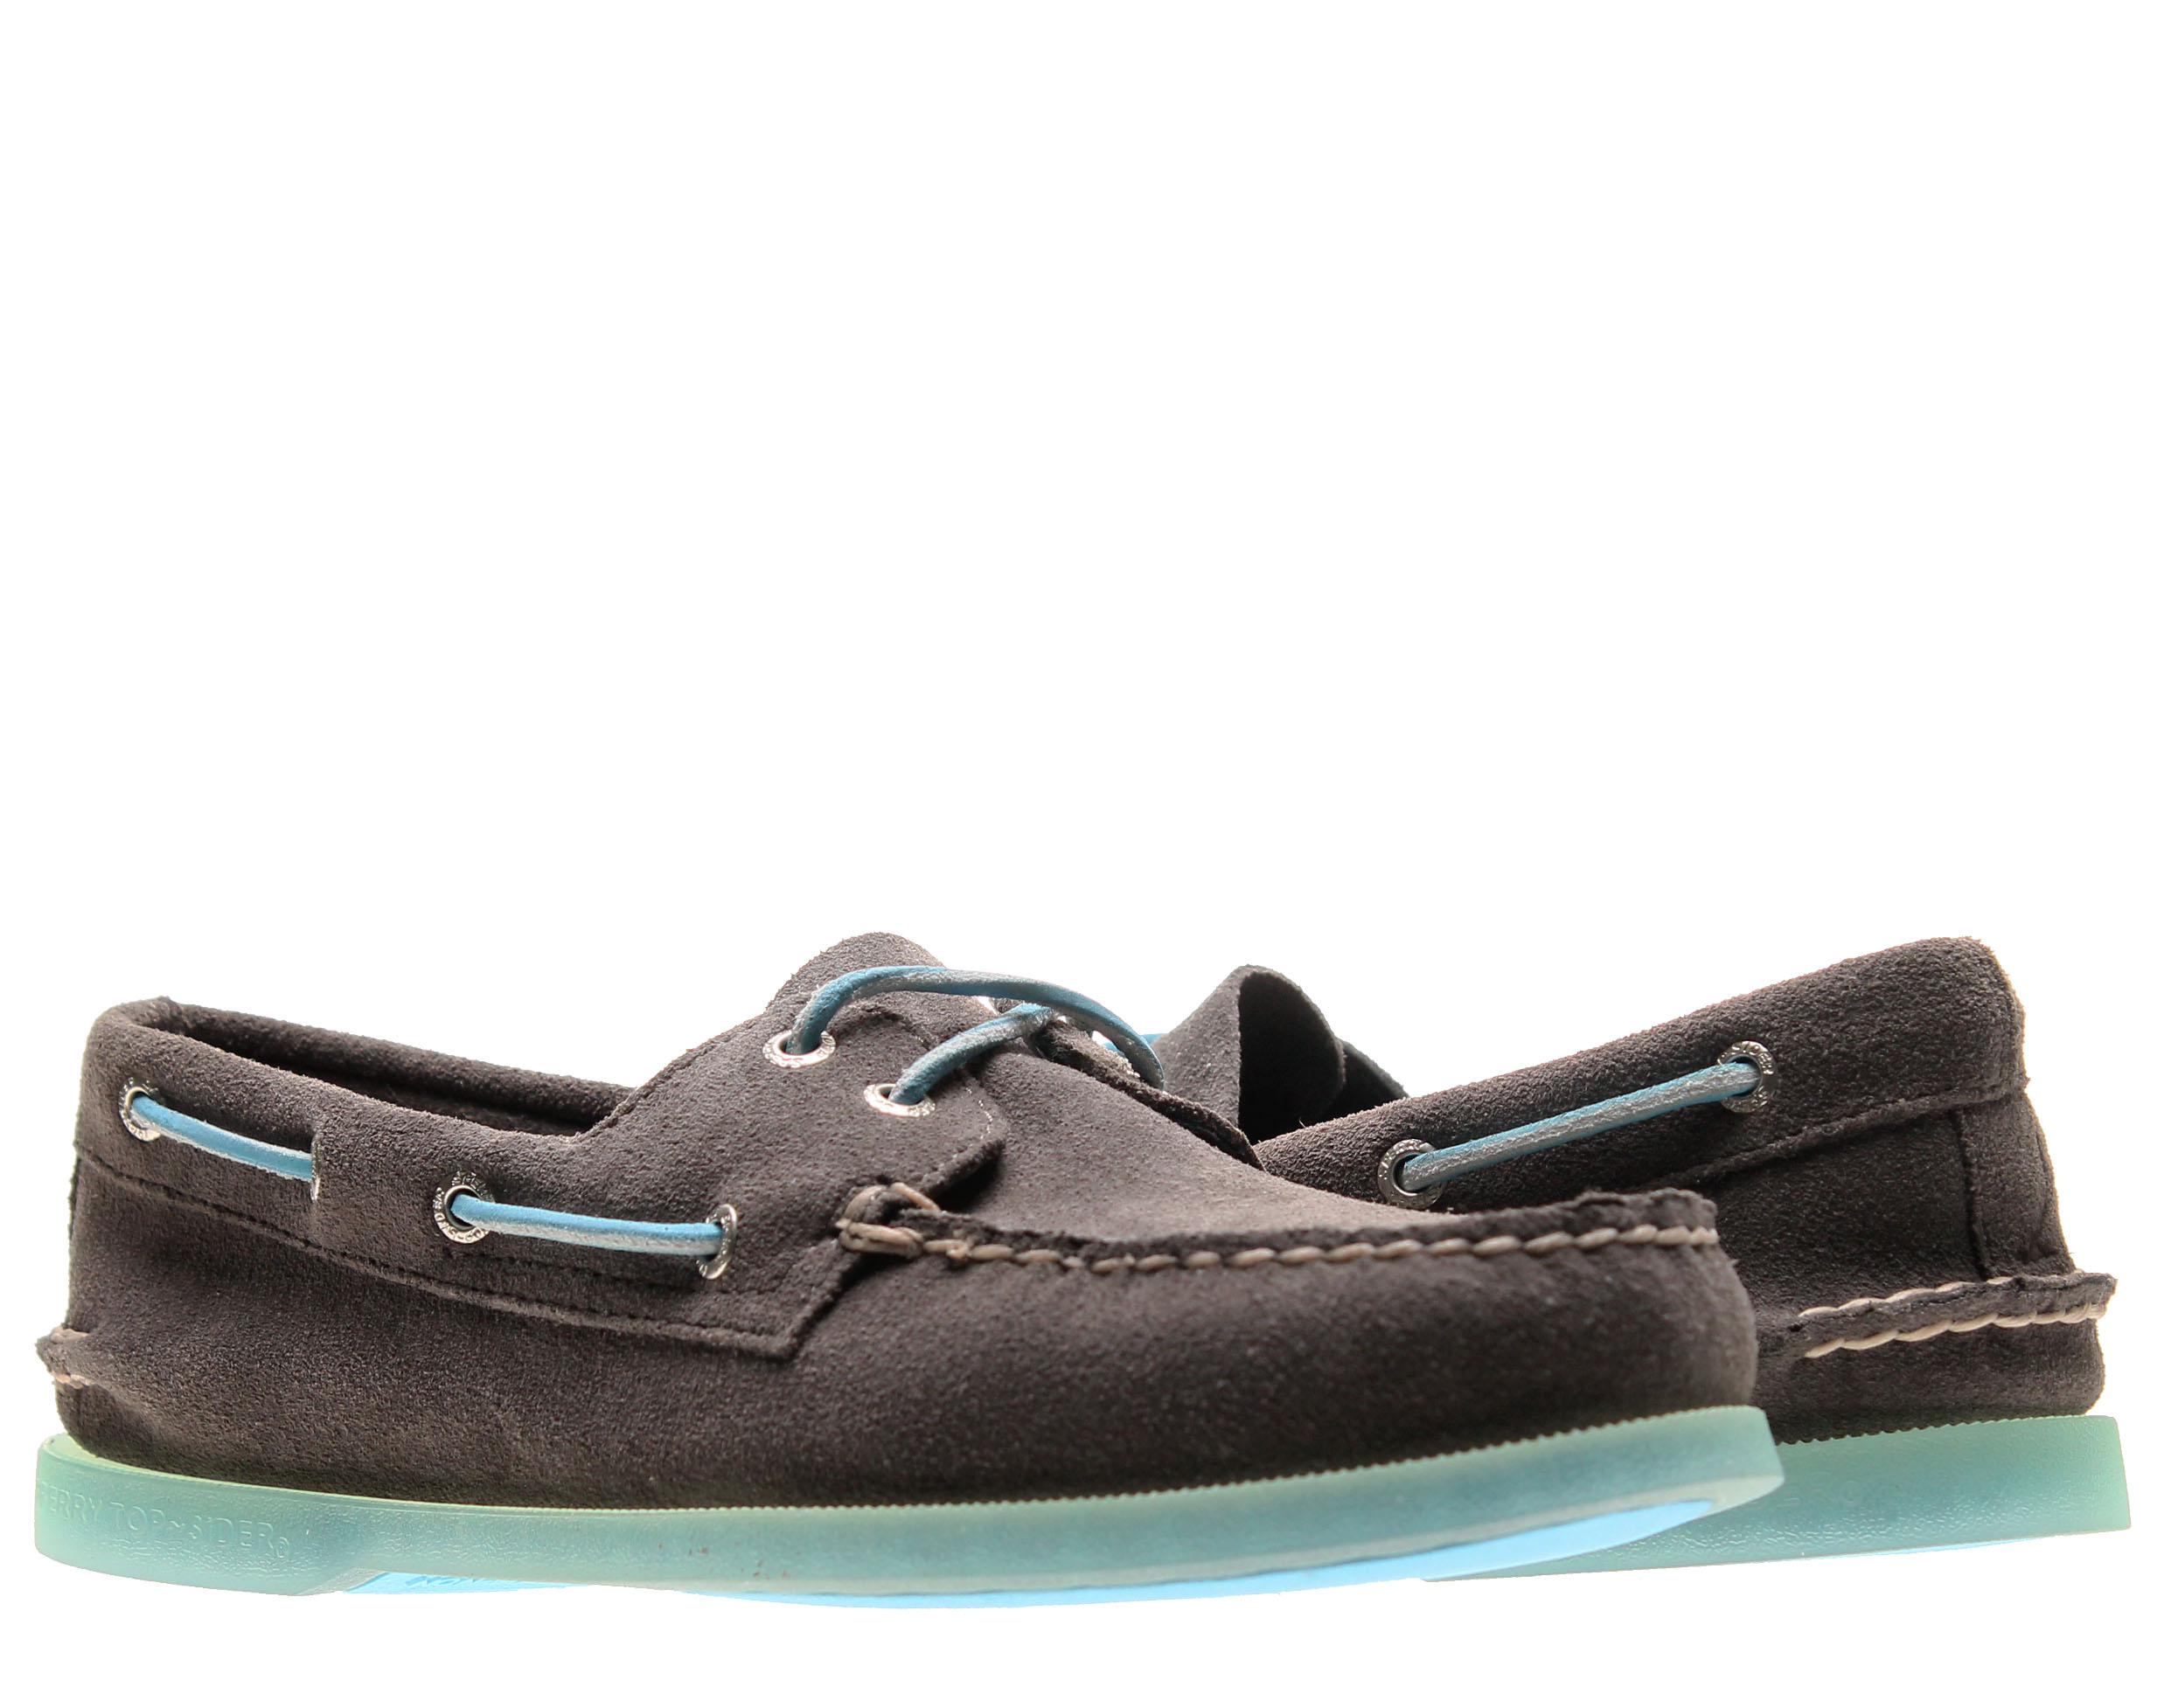 Sperry Top Sider Authentic Original Ice Sole Grey Suede 2-Eye Men's Boat Shoes 10509810 by